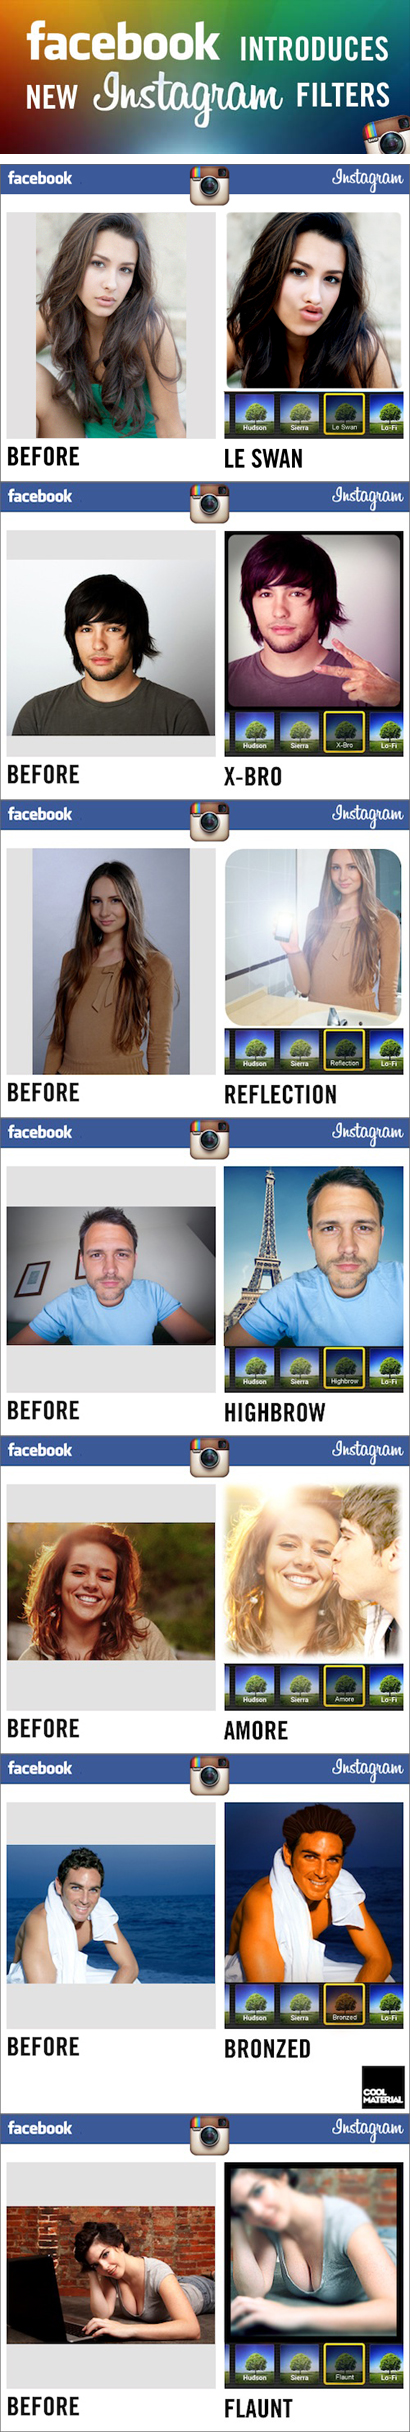 Hilarious --> Facebook introduces new Instagram filters